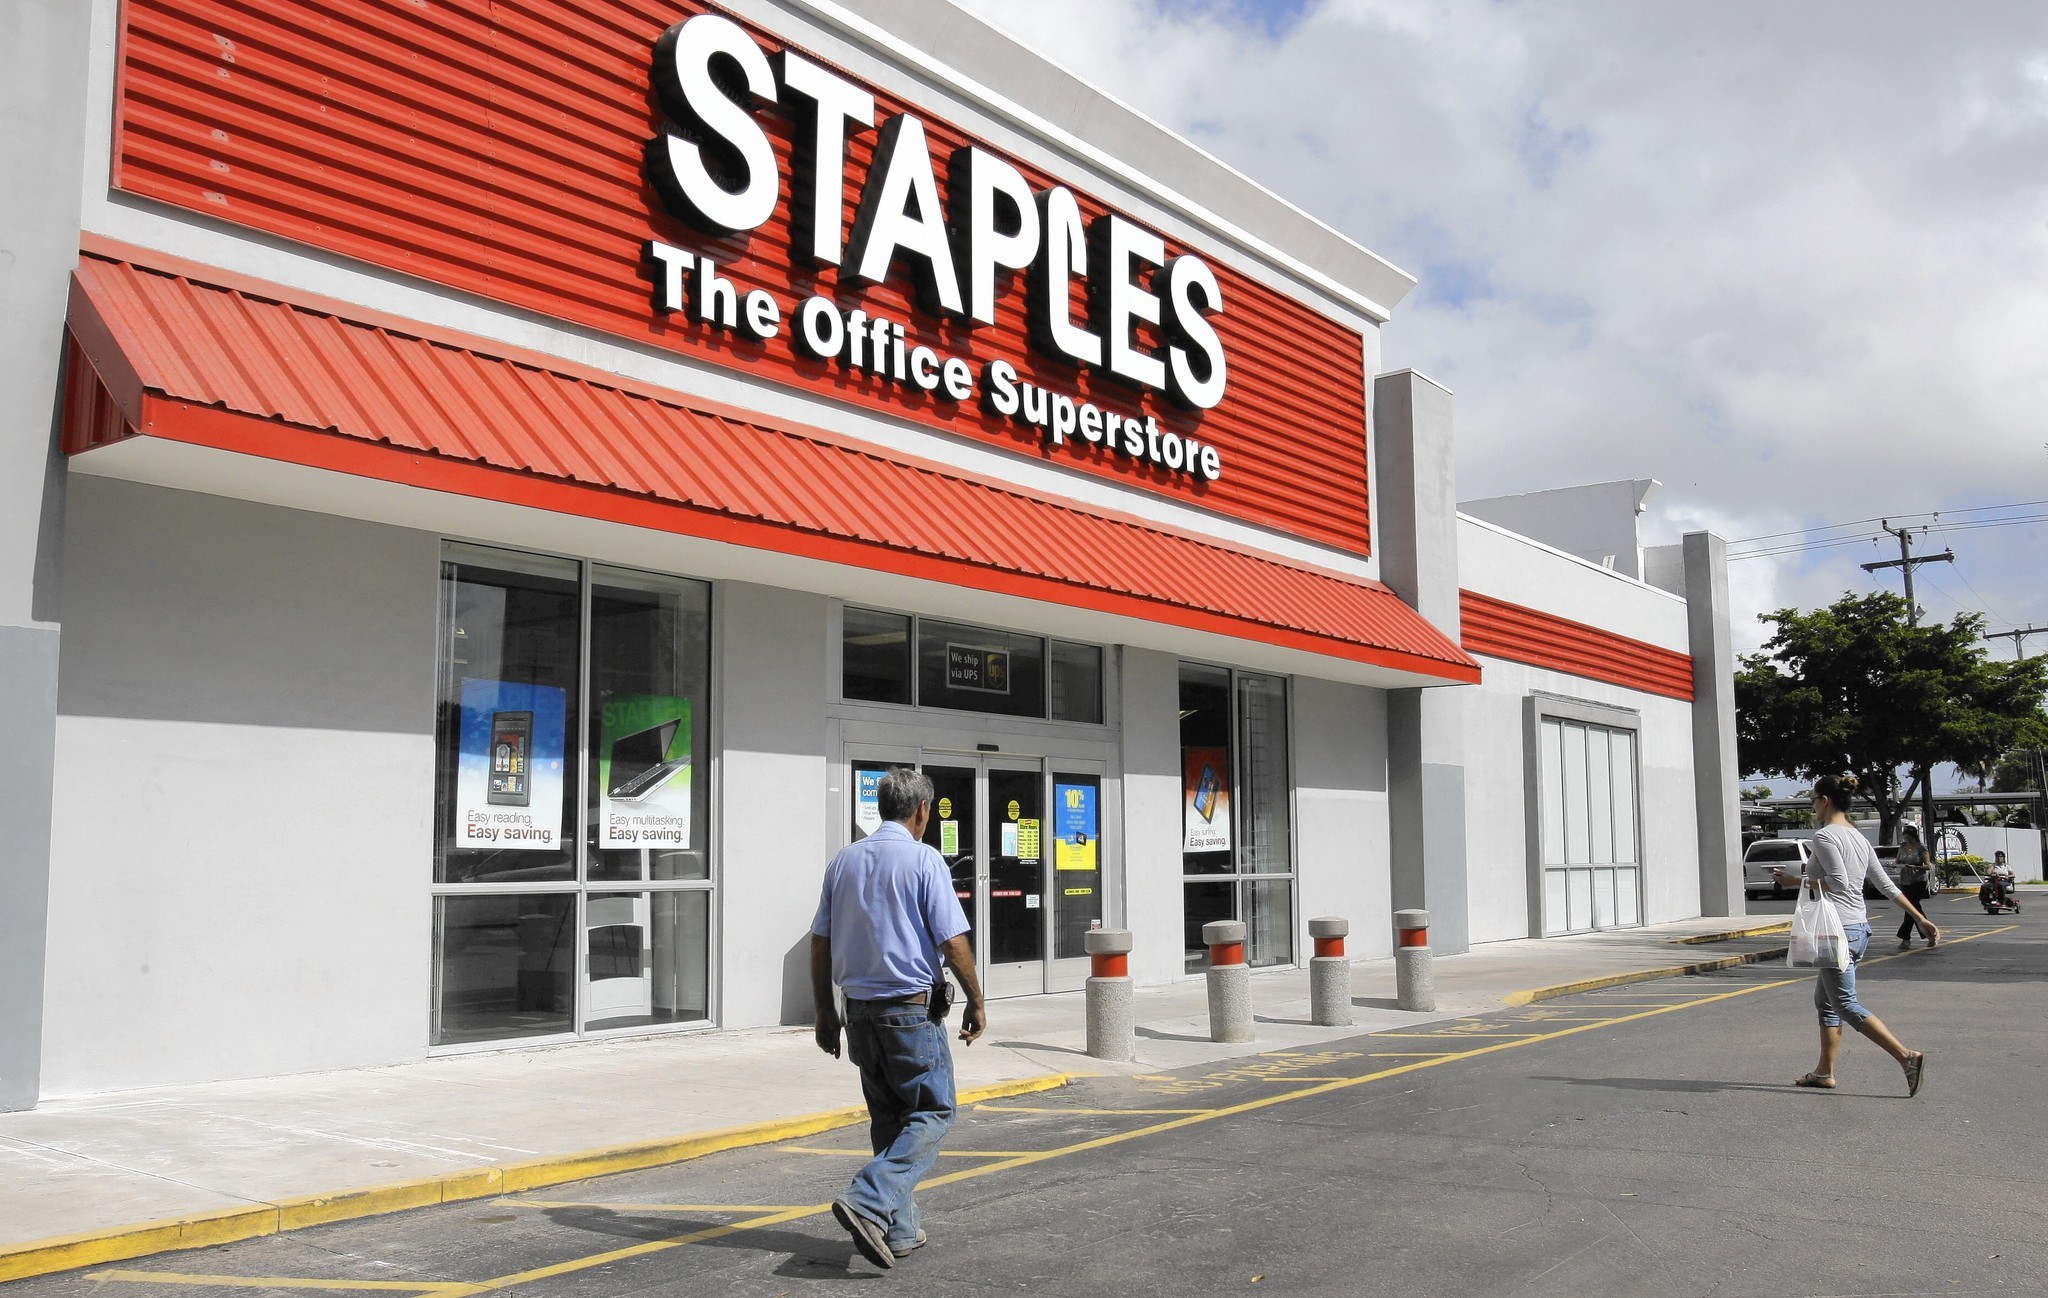 Elegant Staples, Sports Authority Announce Closings As Retailers Look To Downsize    Chicago Tribune